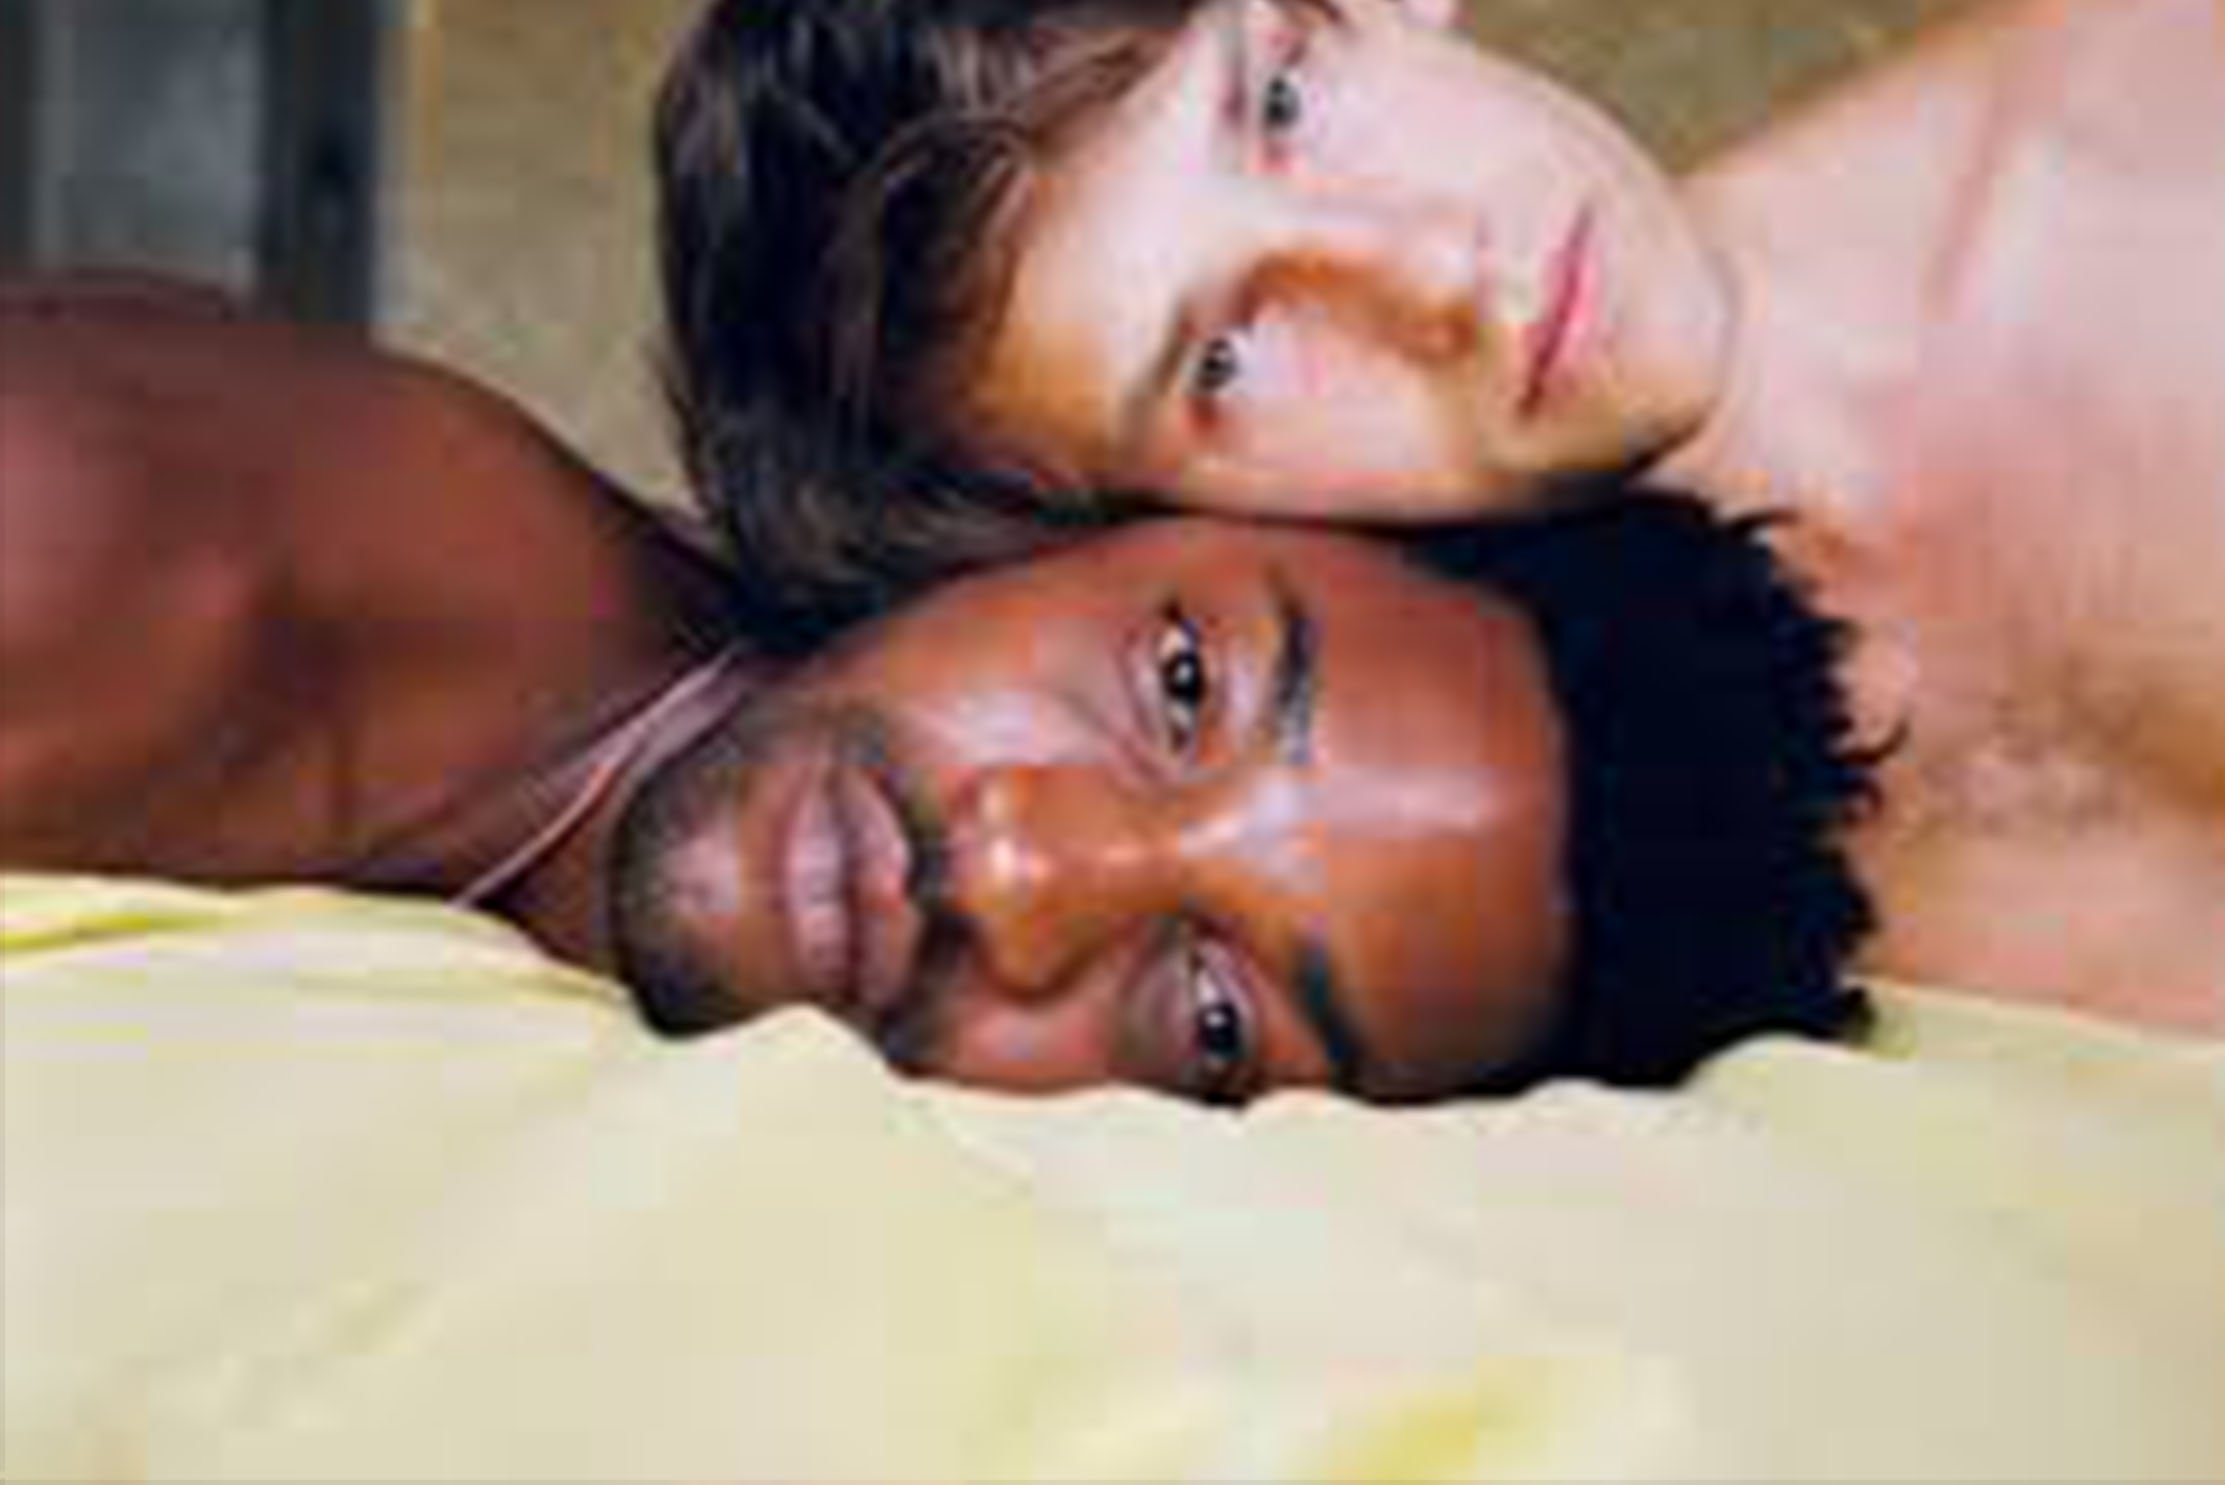 Bringing together the best new LGBTIQ+ cinema from around the world, the BFI Flare Film Festival runs until Sun 28 March 2021